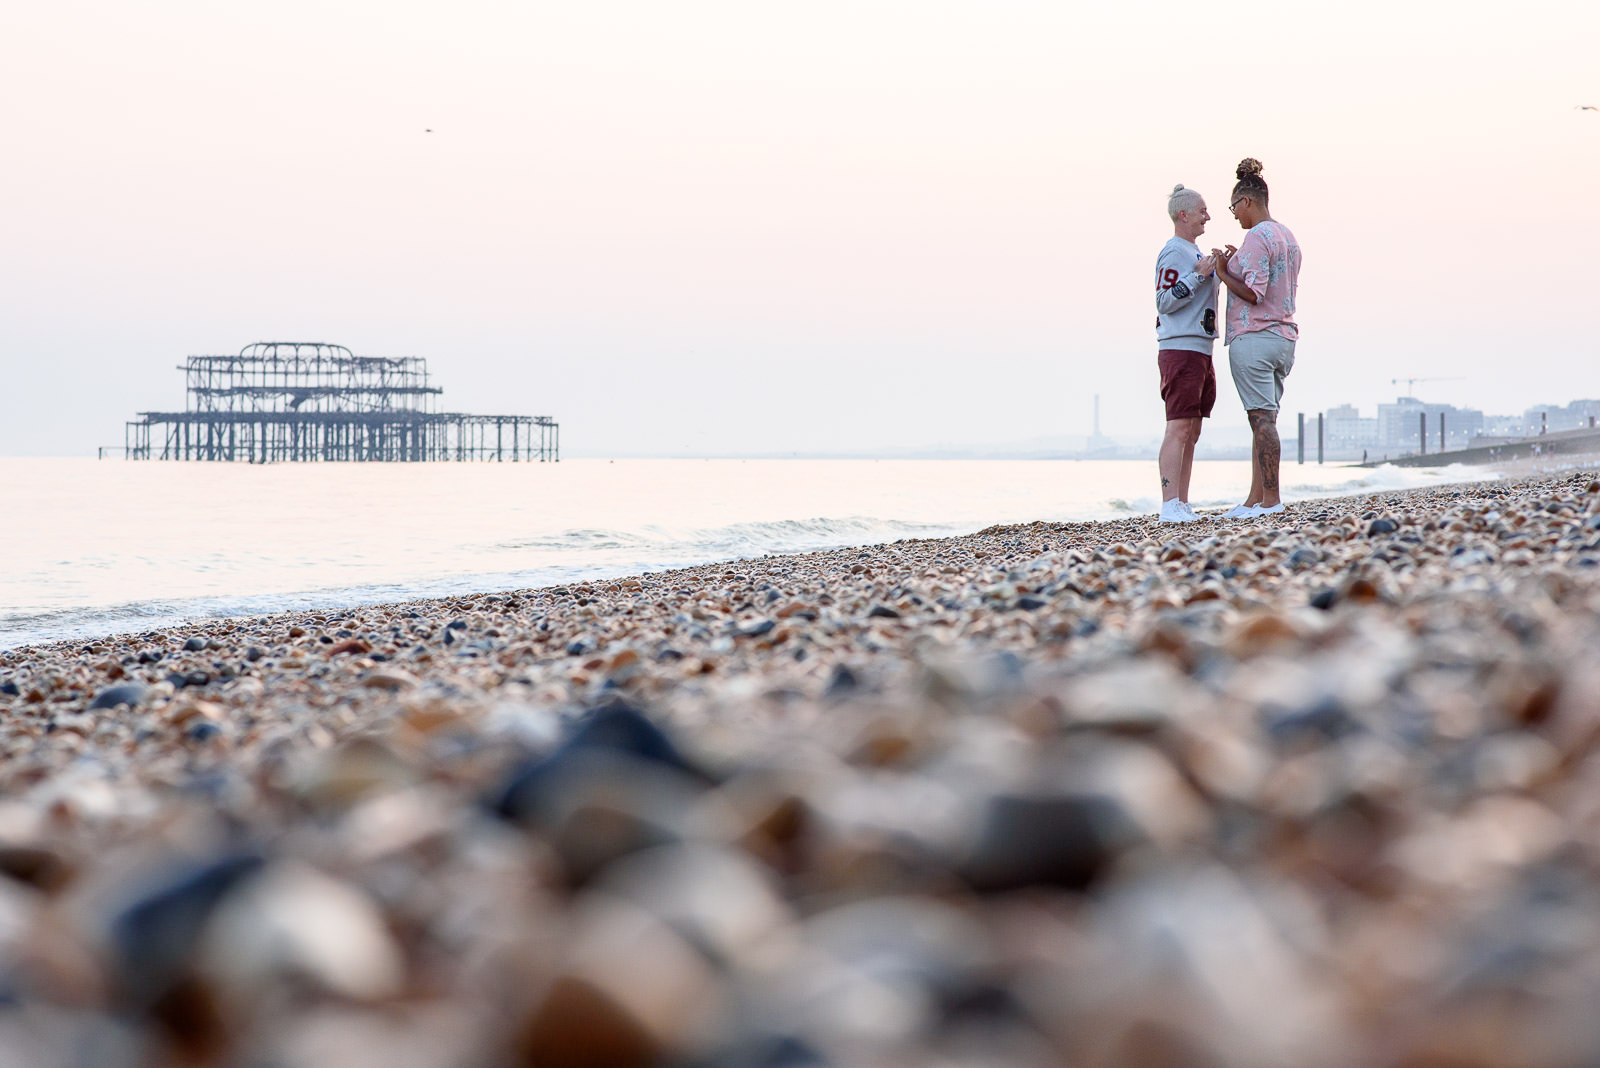 couple photo shoot location on Brighton beach with West Pier